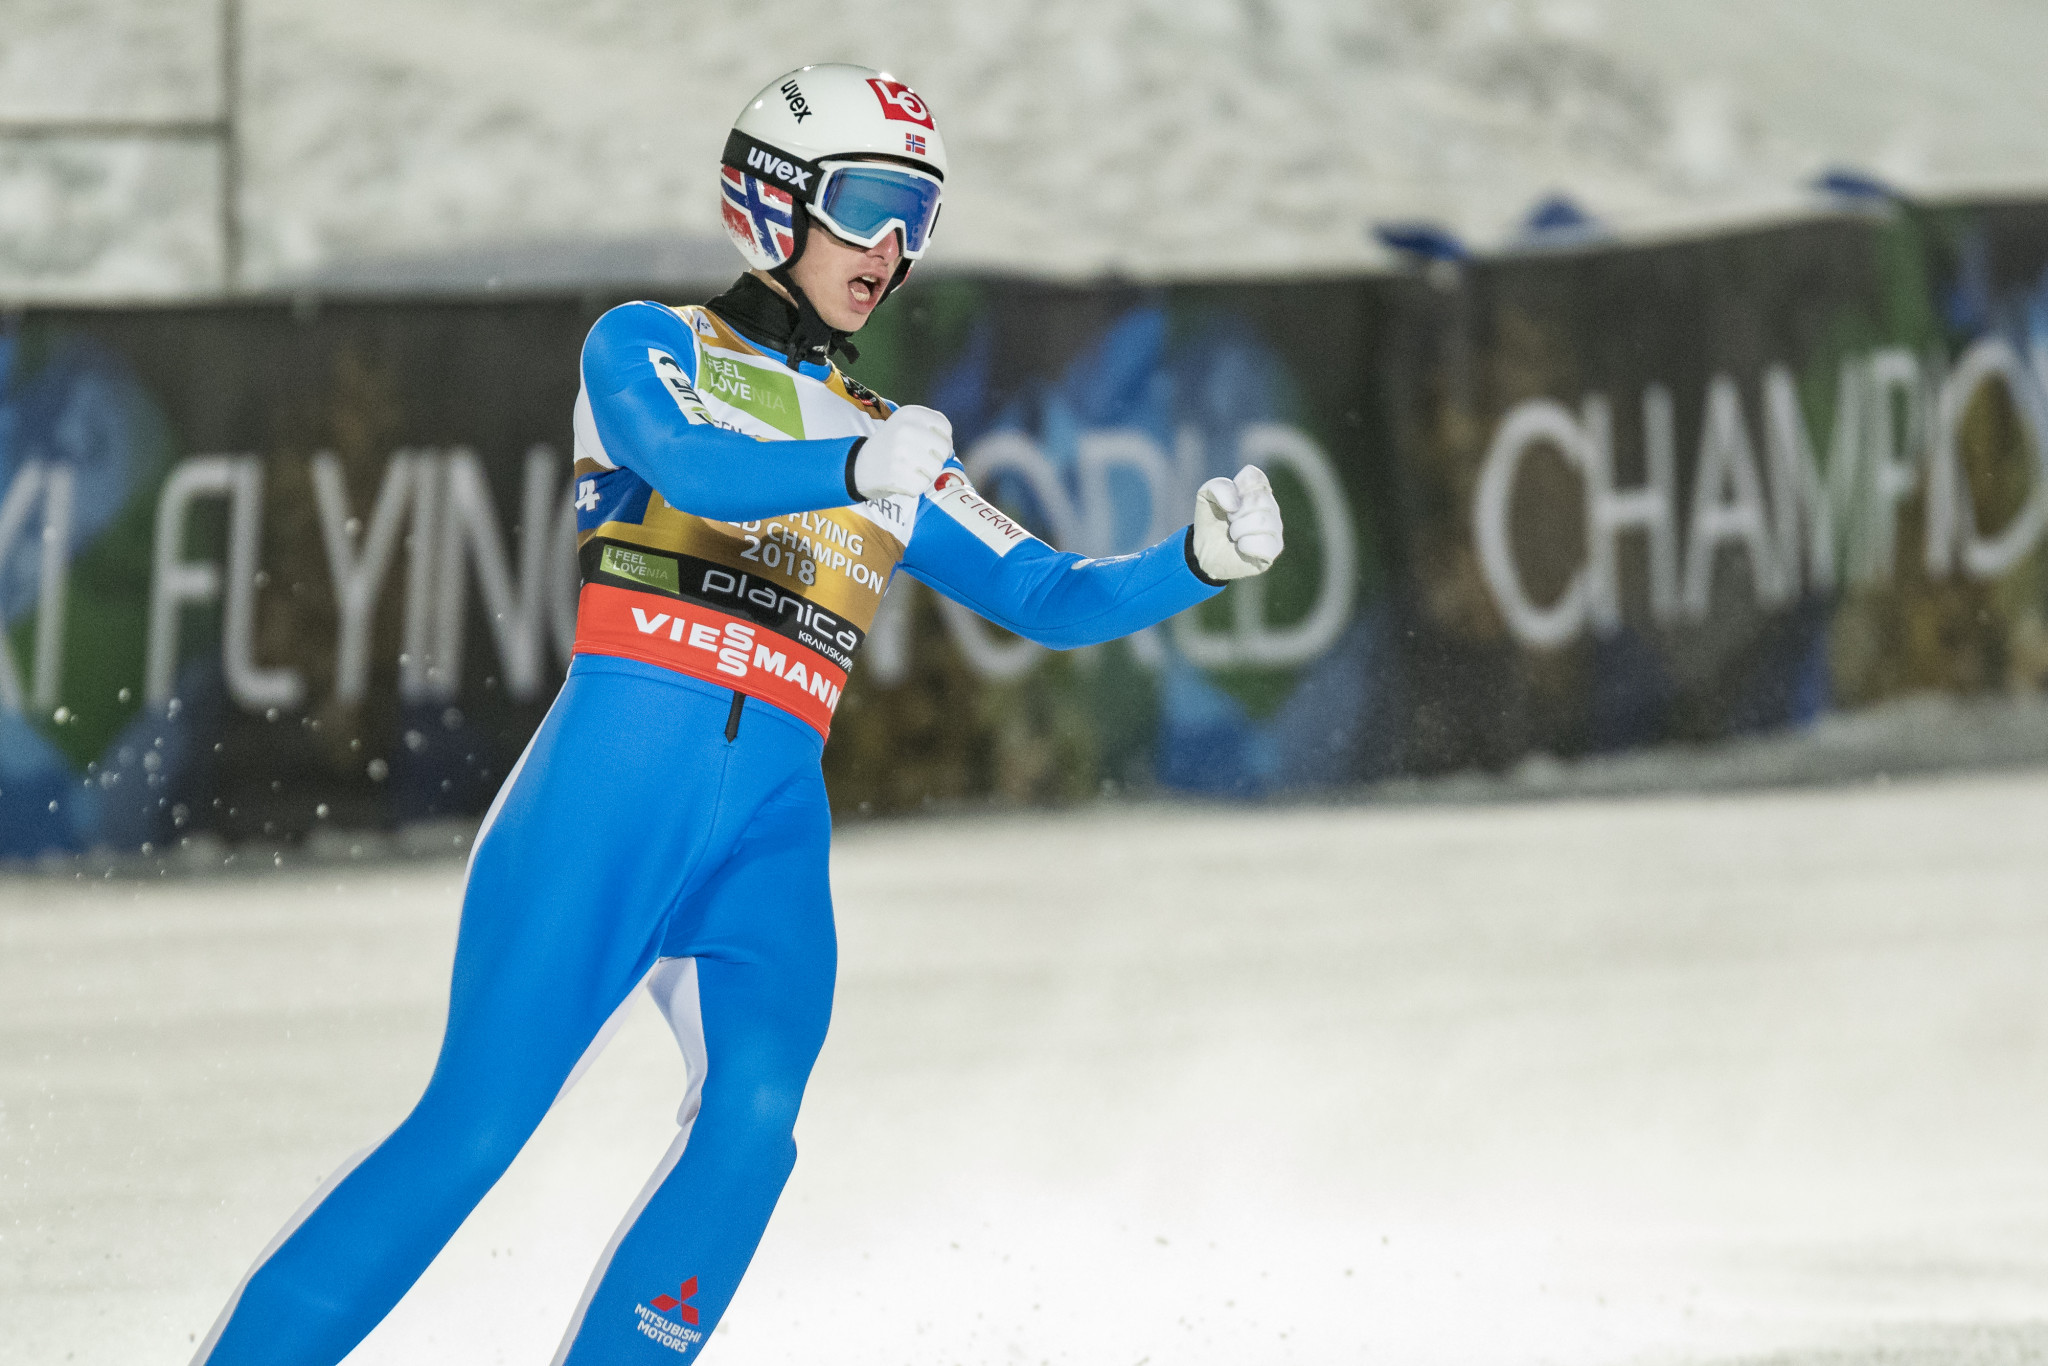 Granerud looking to continue winning run as Four Hills Tournament begins